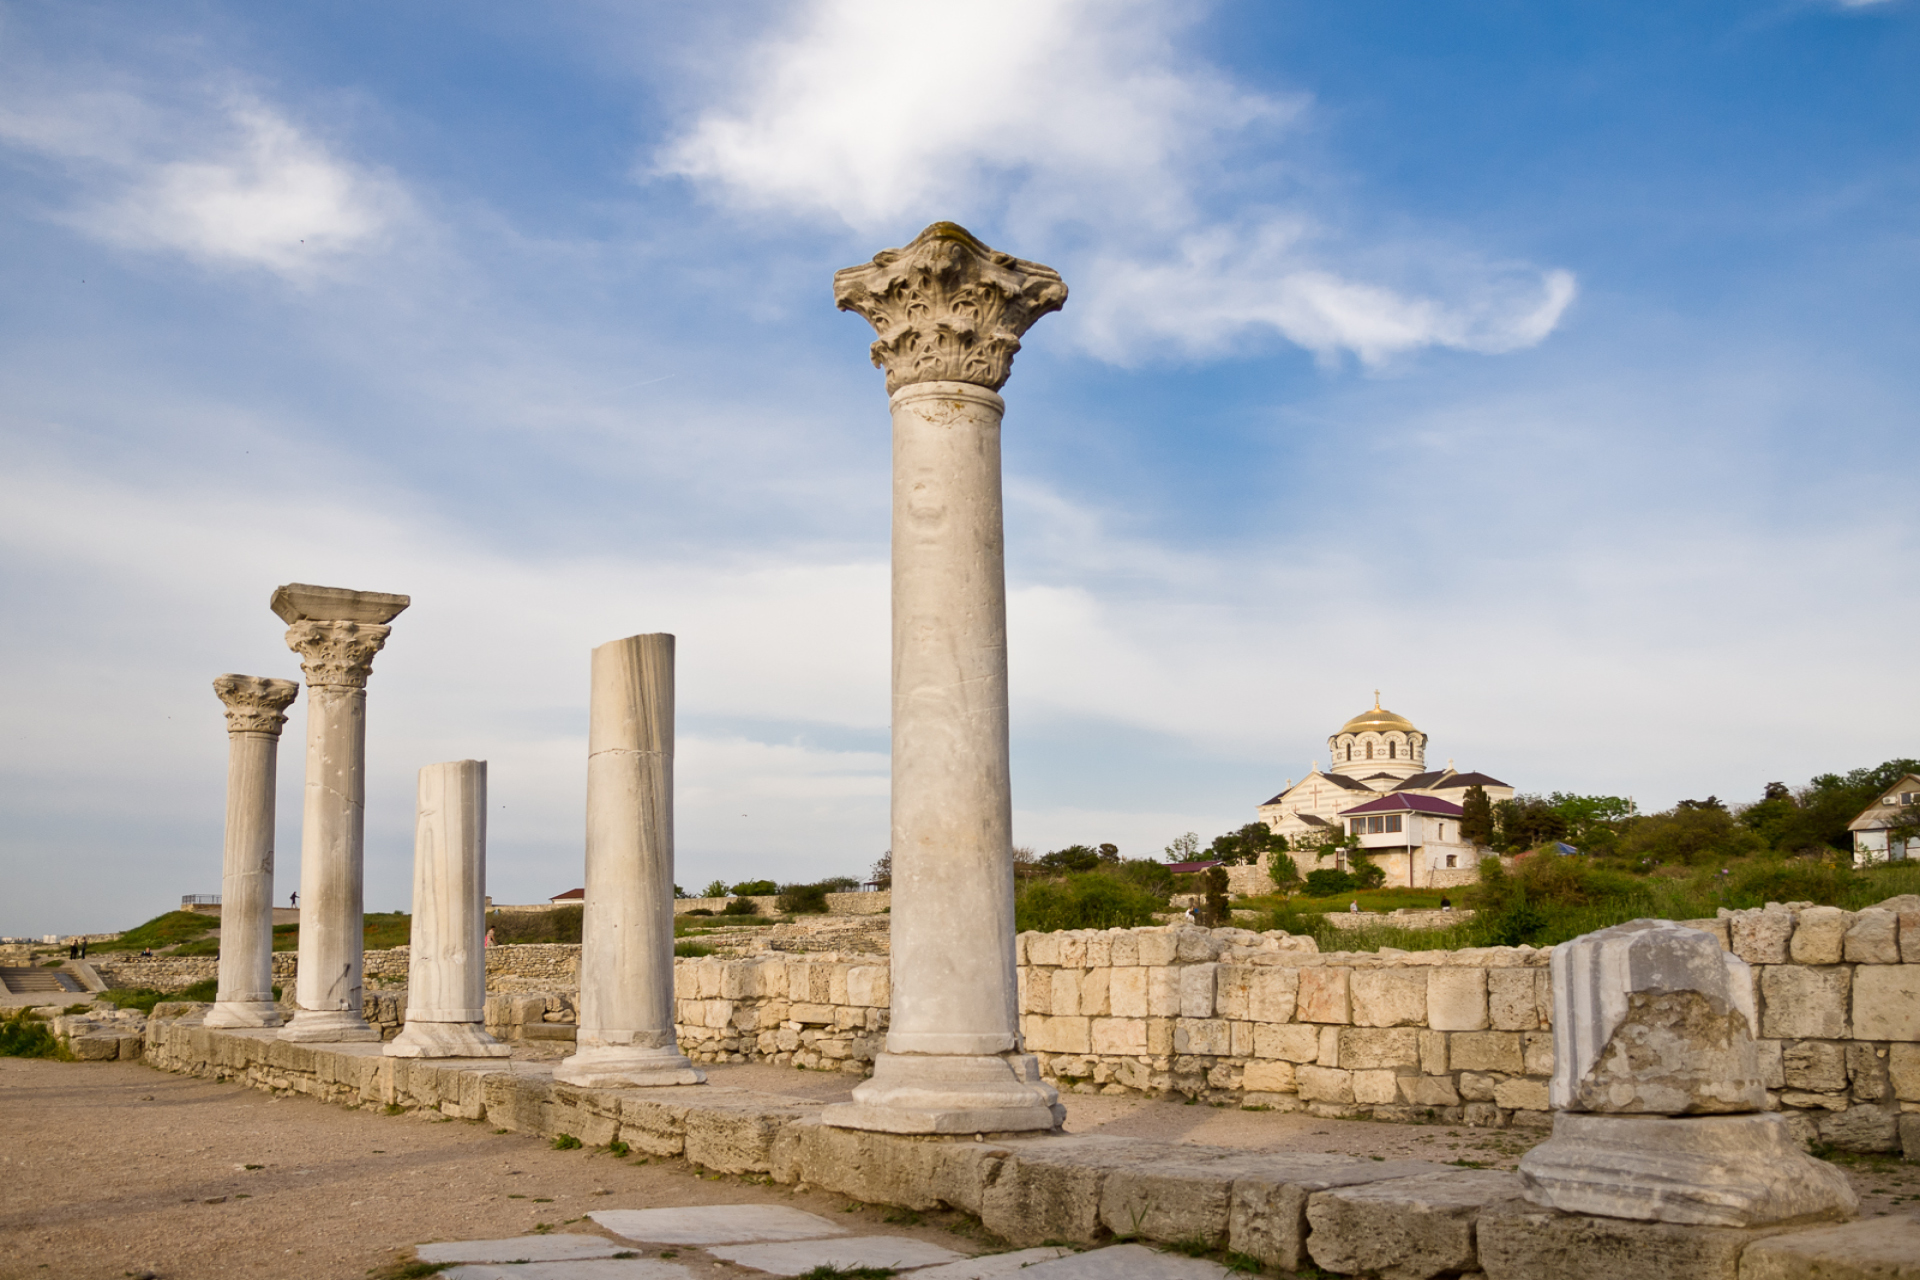 Ruins of an ancient Greek city, columns of the Corinthian order in front and a byzantine church on the background